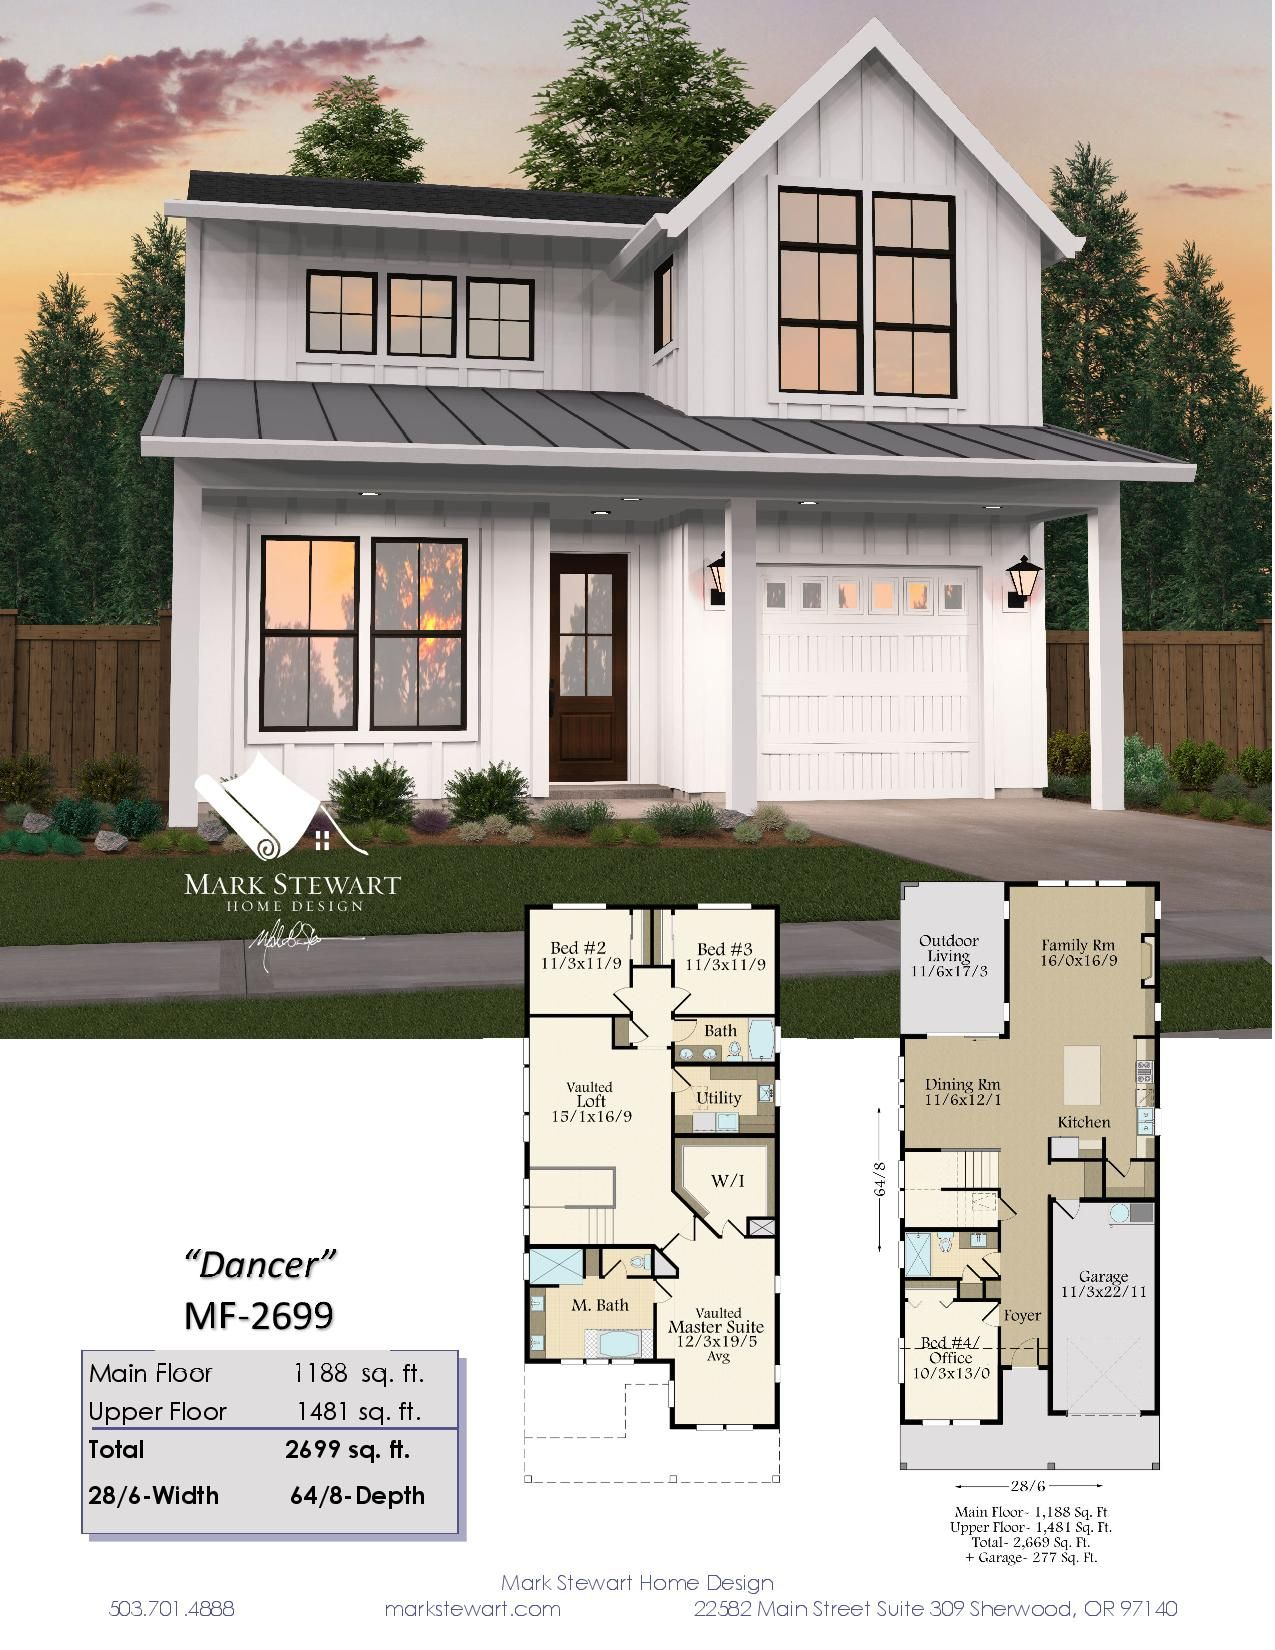 Dancer House Plan Two Story Modern Farmhouse Plans With Garage Small Farmhouse Plans Modern Farmhouse Plans Farmhouse Plans